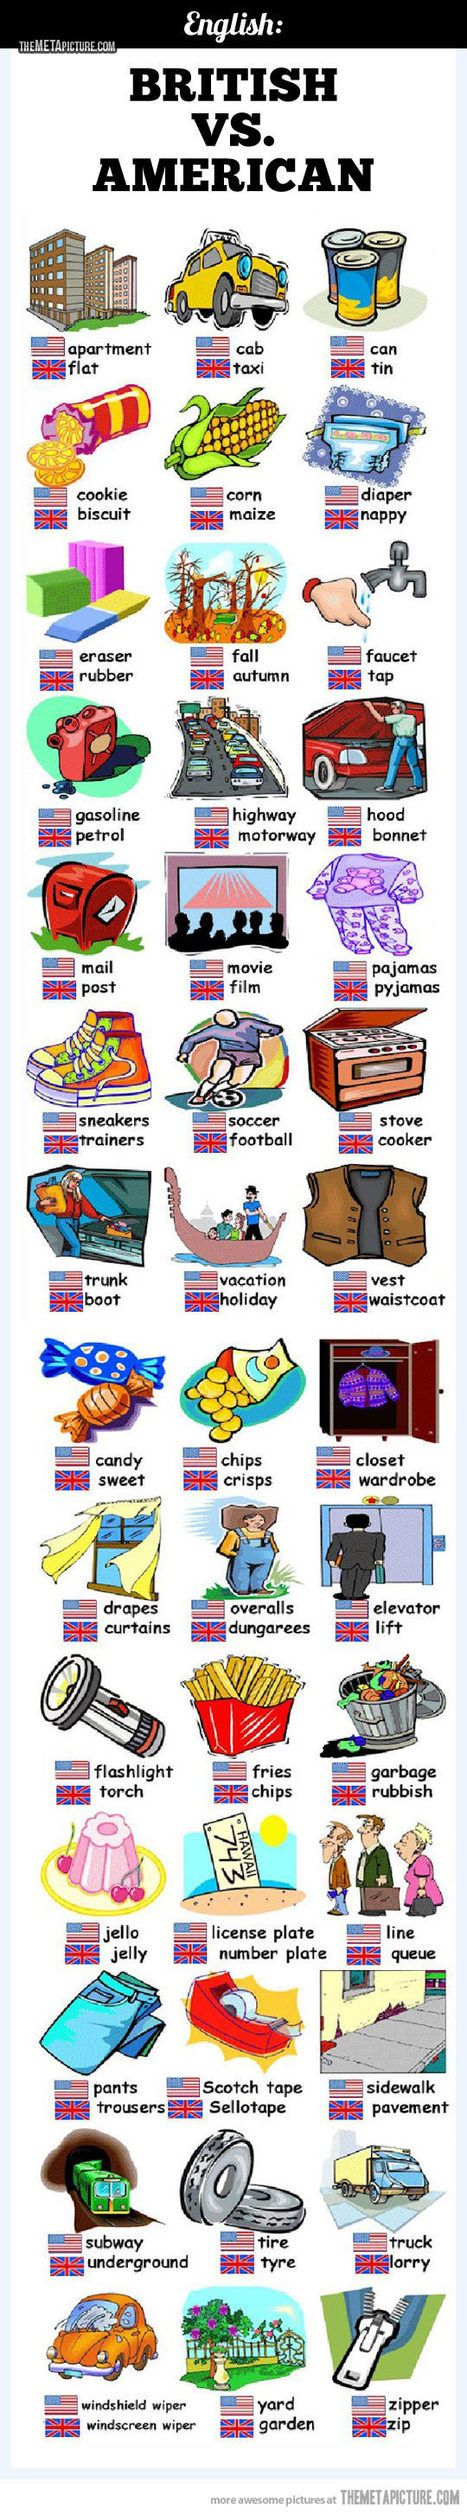 British American English differences | VOCABULARY | ELT resources designed for building EFL-ESL lessons & courses | Scoop.it